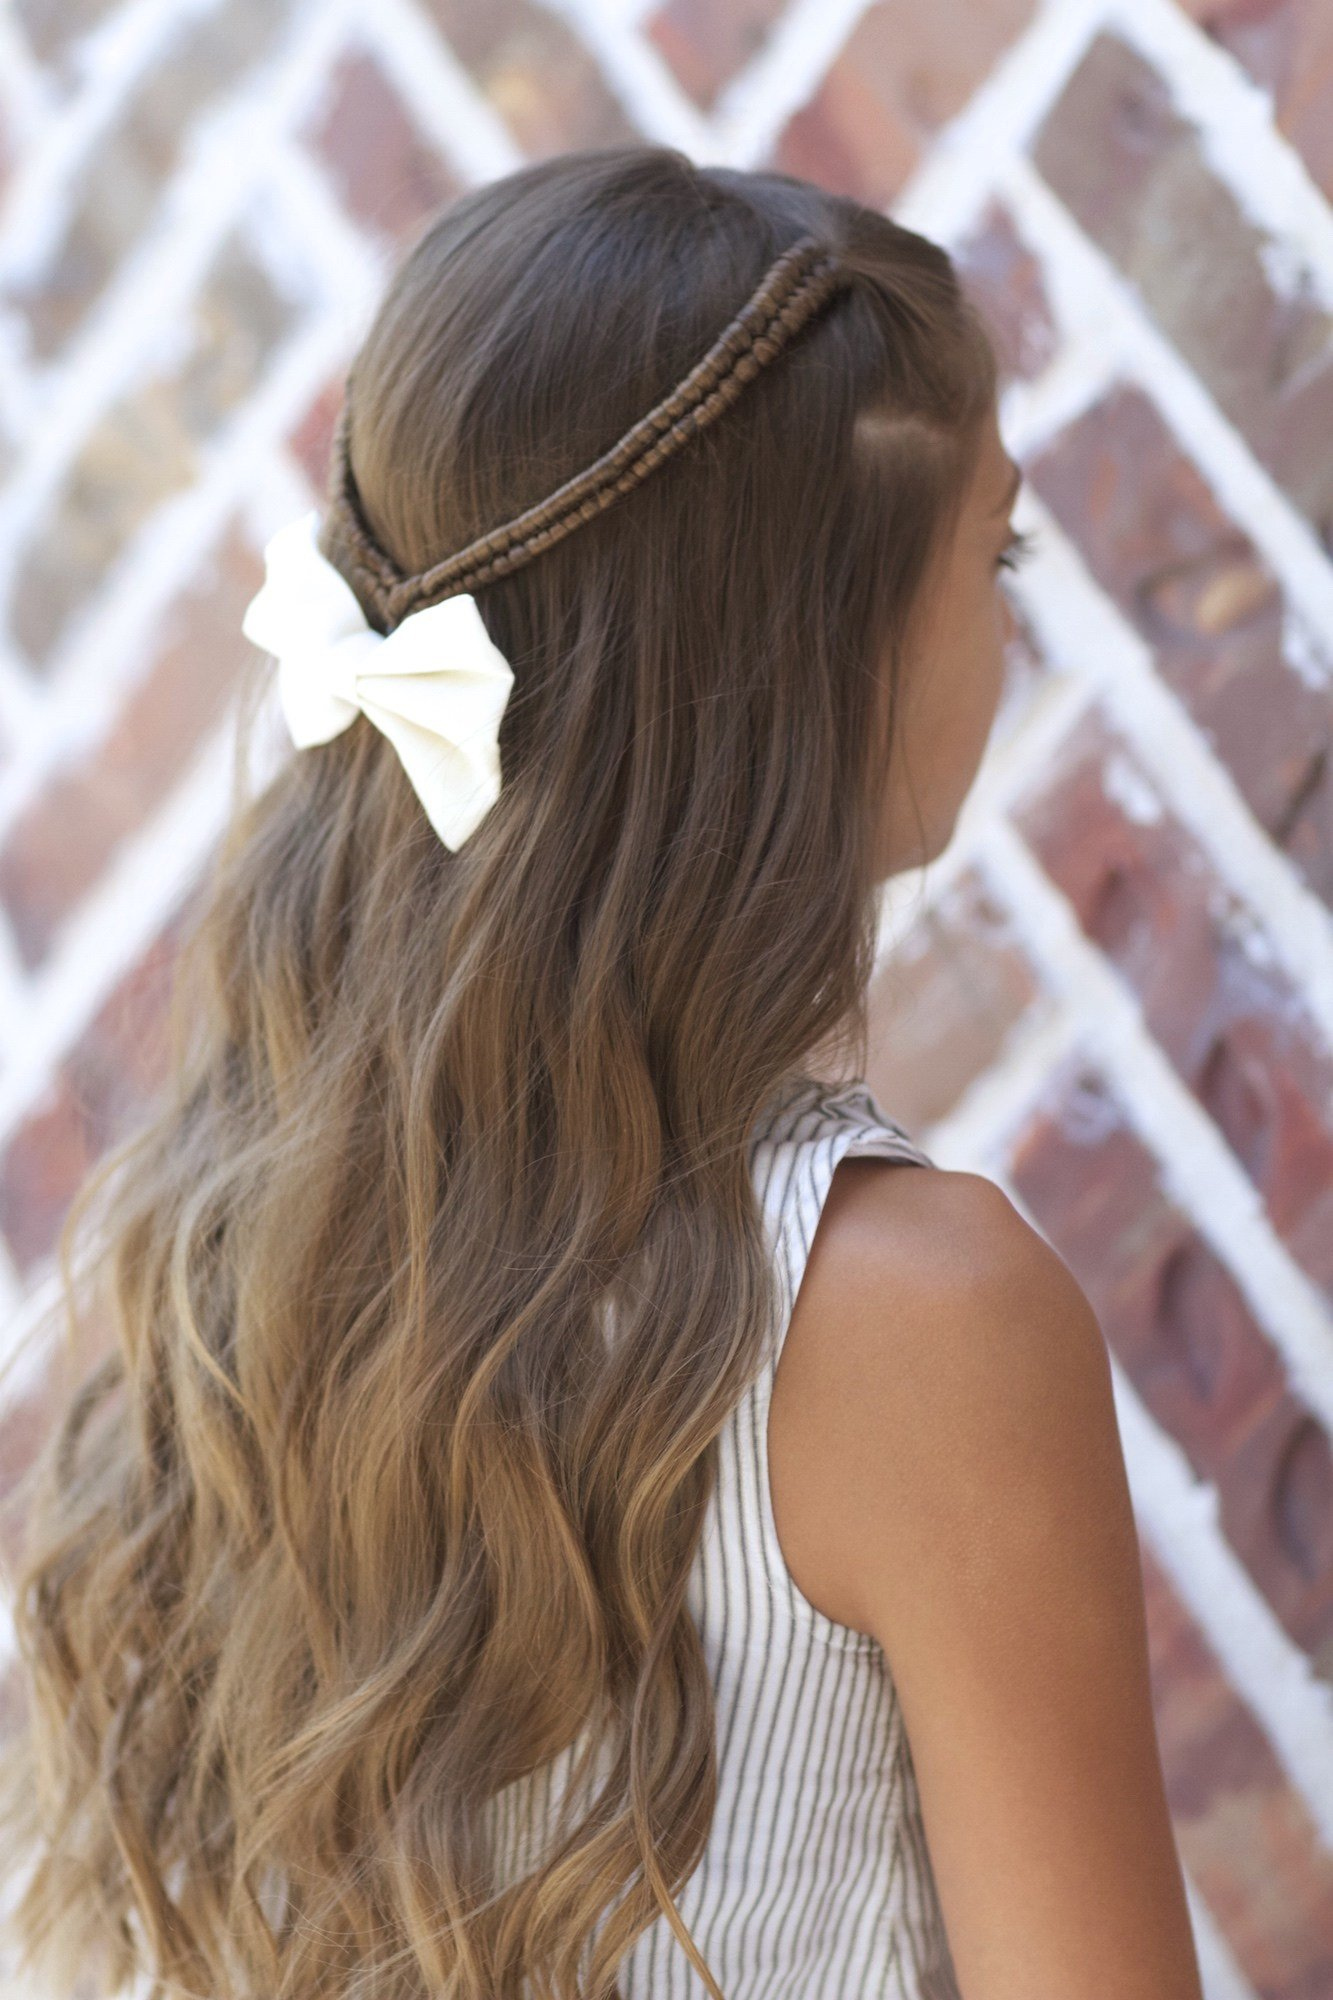 The Best Infinity Braid Tieback Back To School Hairstyles Cute Pictures